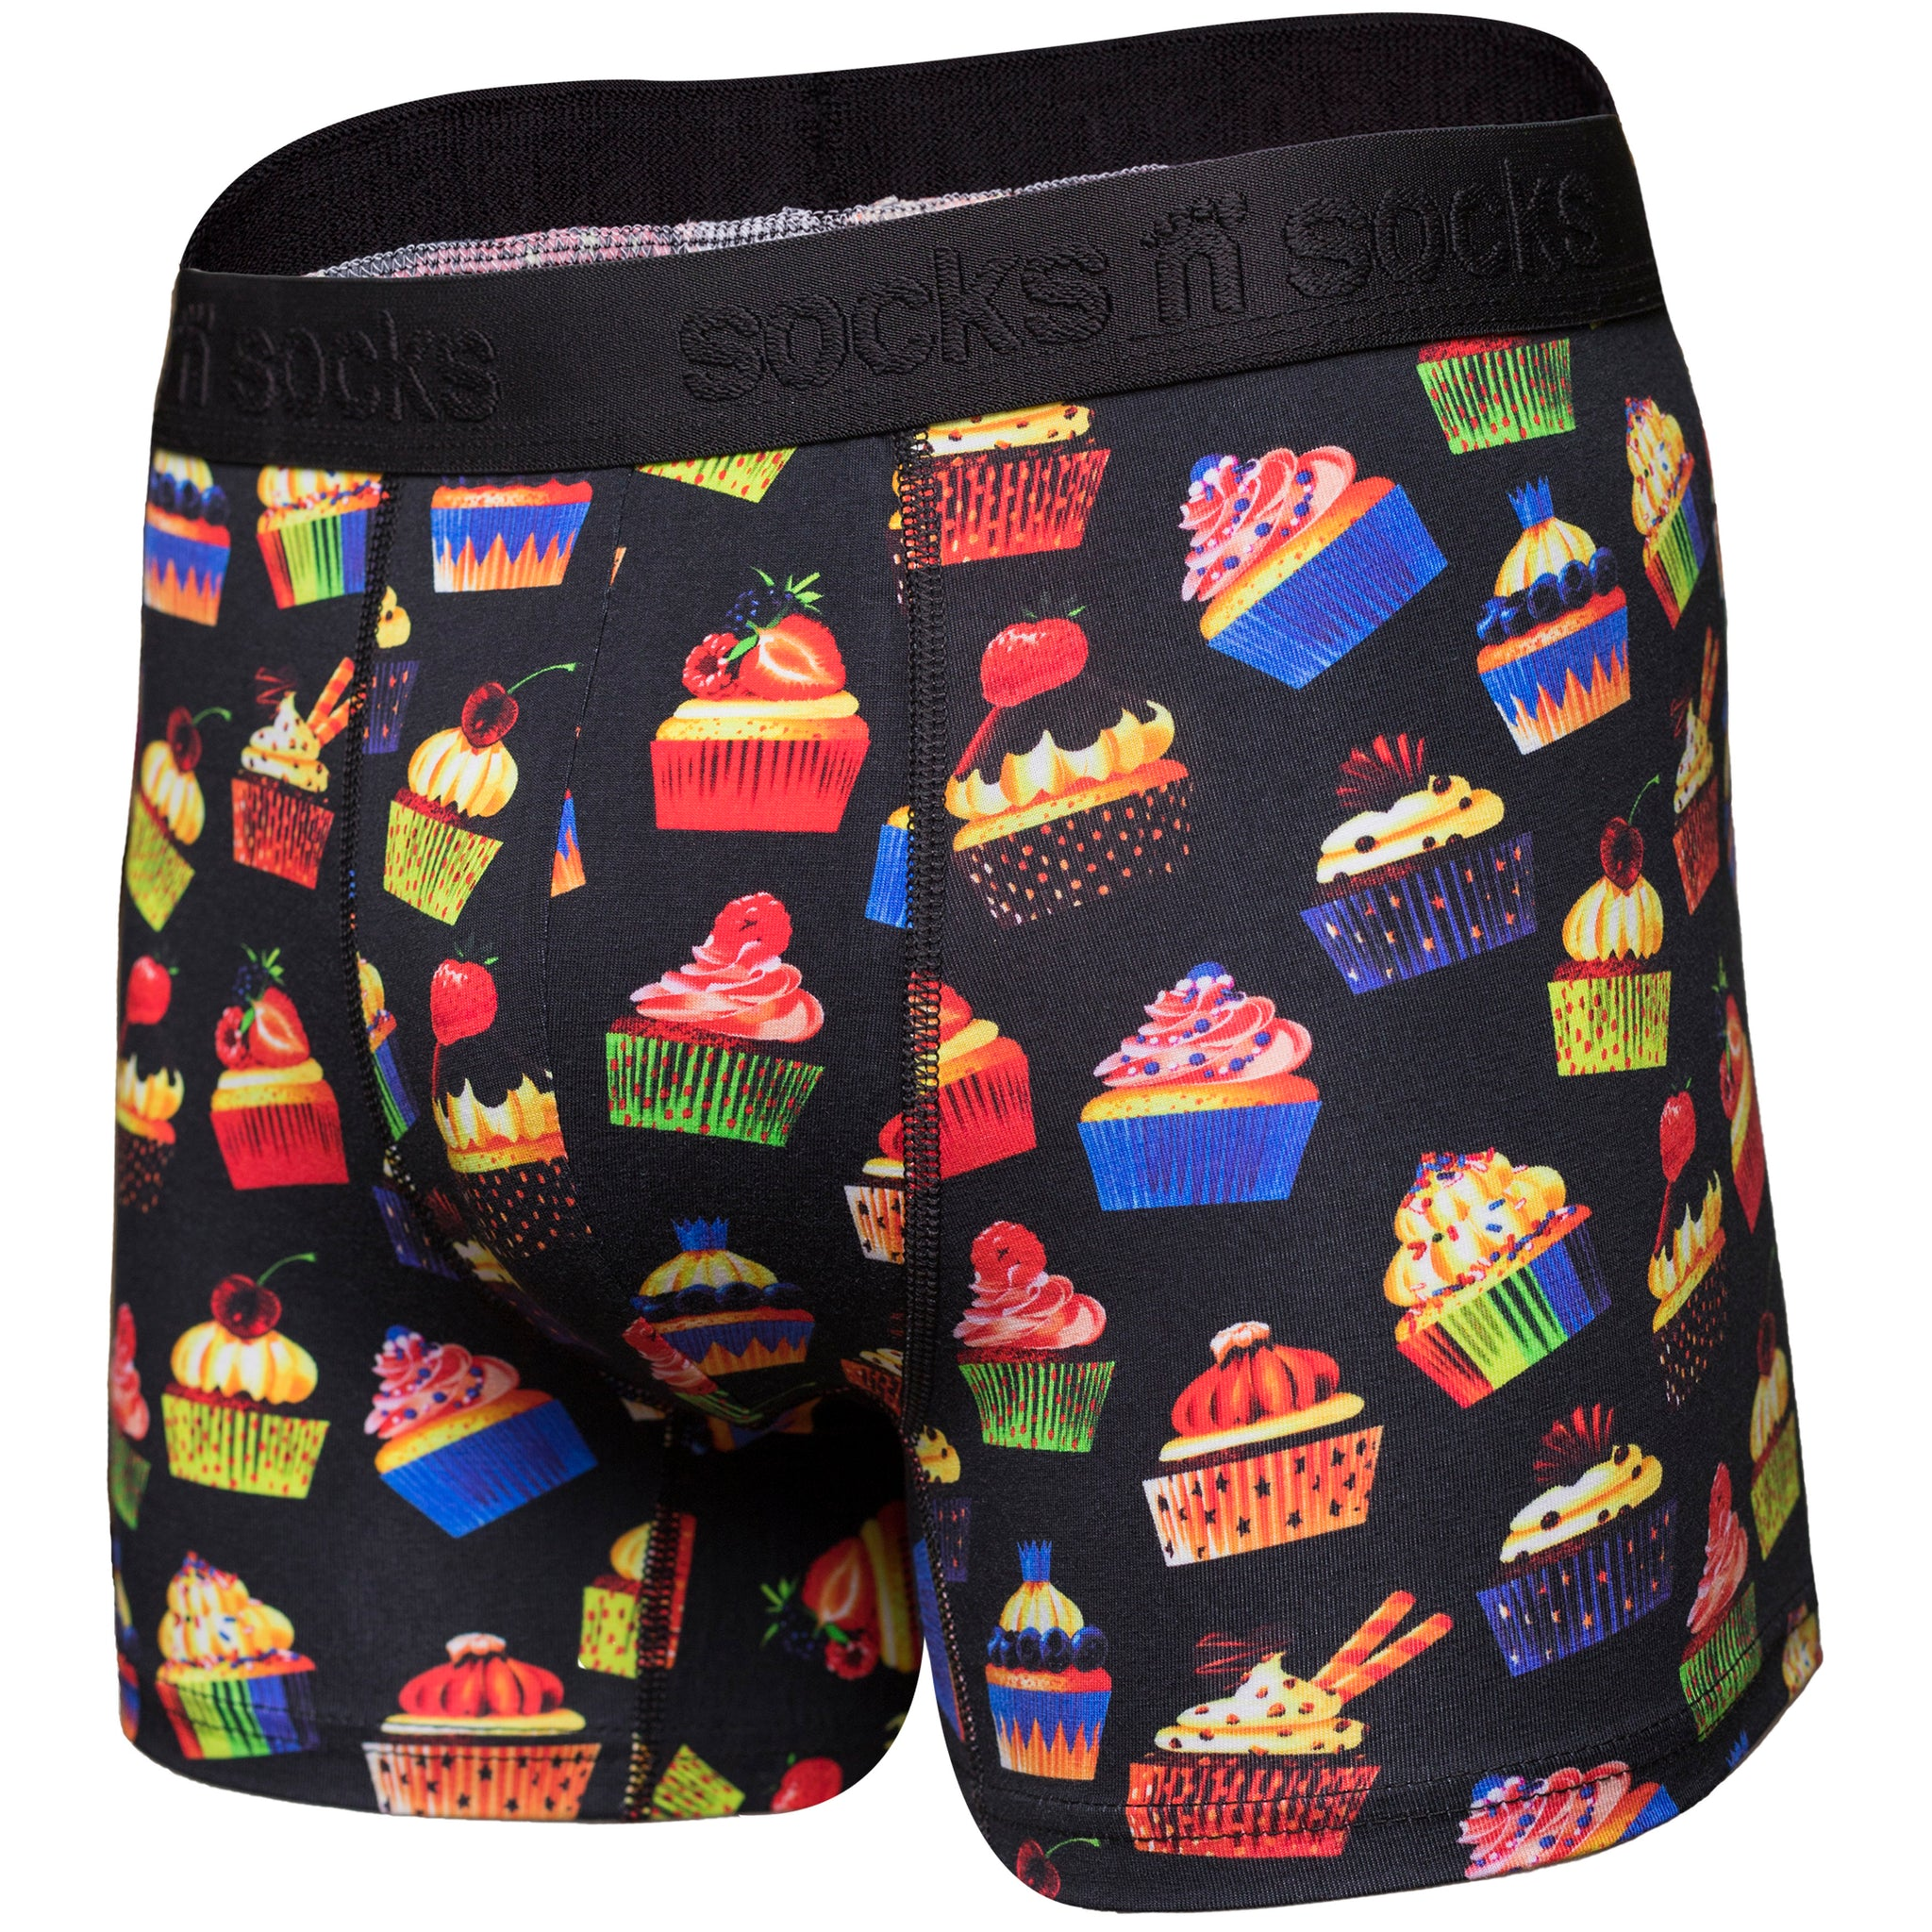 Men's Cupcake Boxer Brief black background